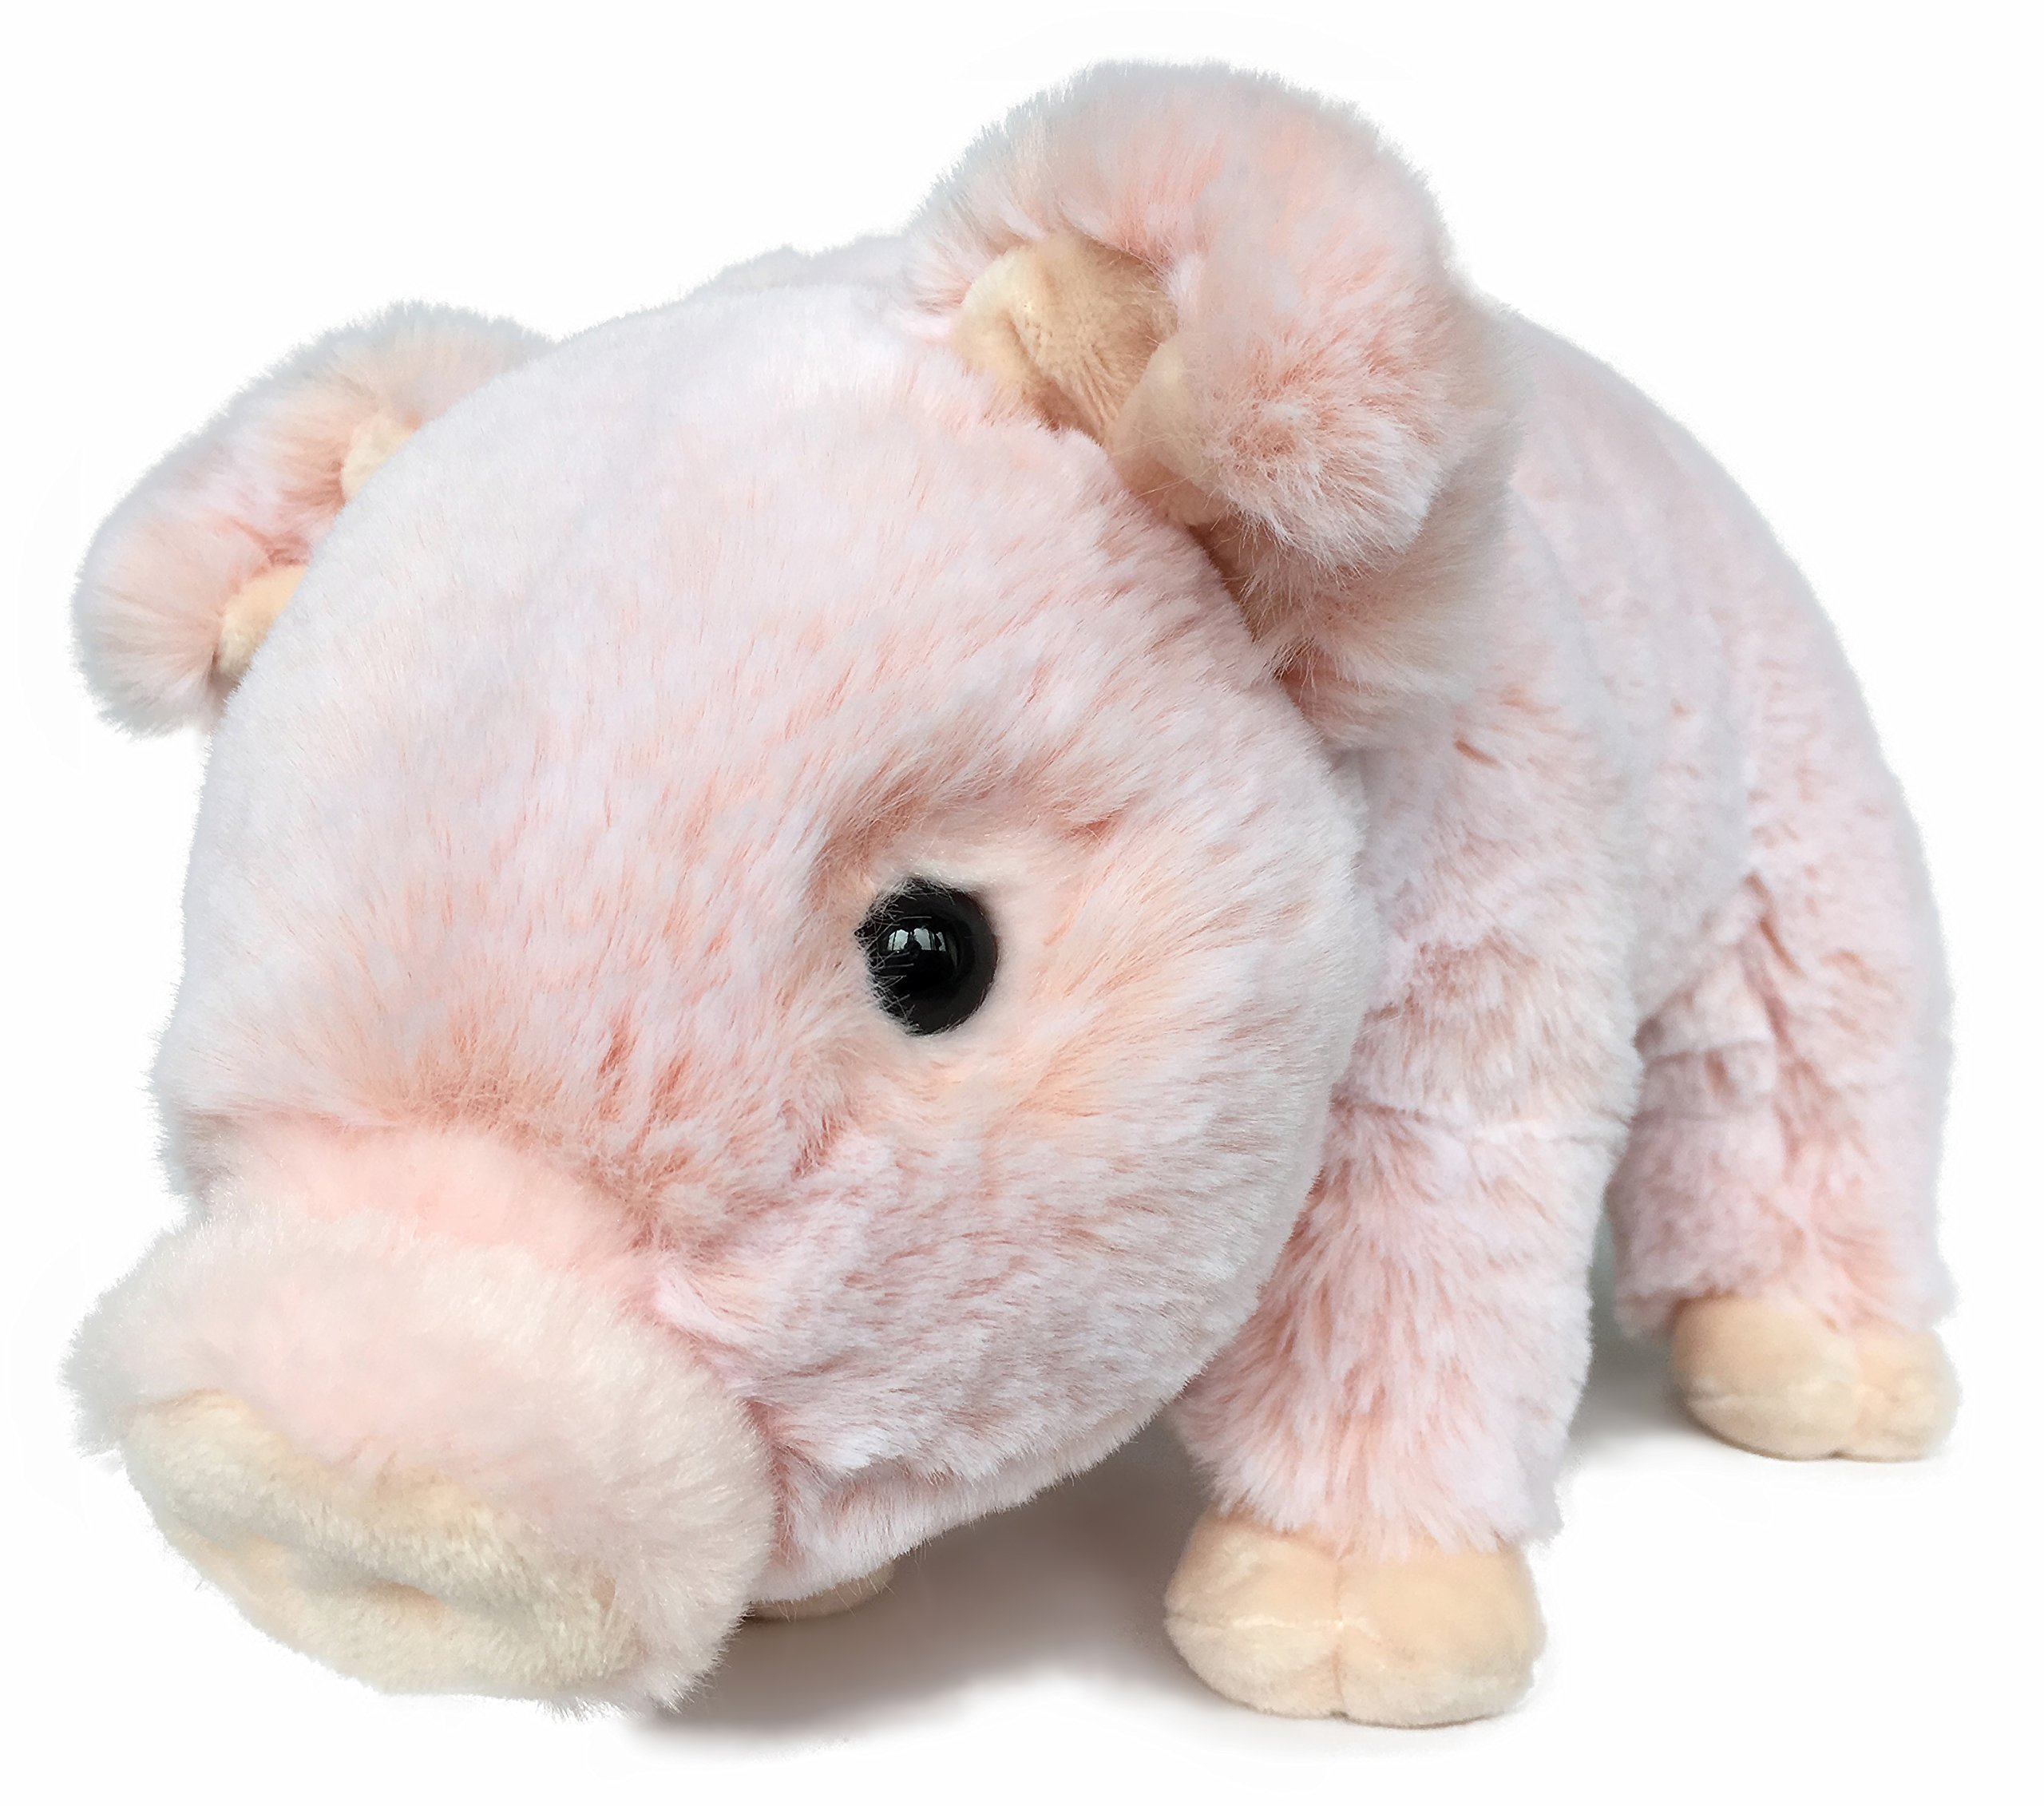 Ice King Bear Lifelike Baby Pig Stuffed Animal Piggy - Piglet Plush Toy - 13 Inches Length (Original) by Ice King Bear